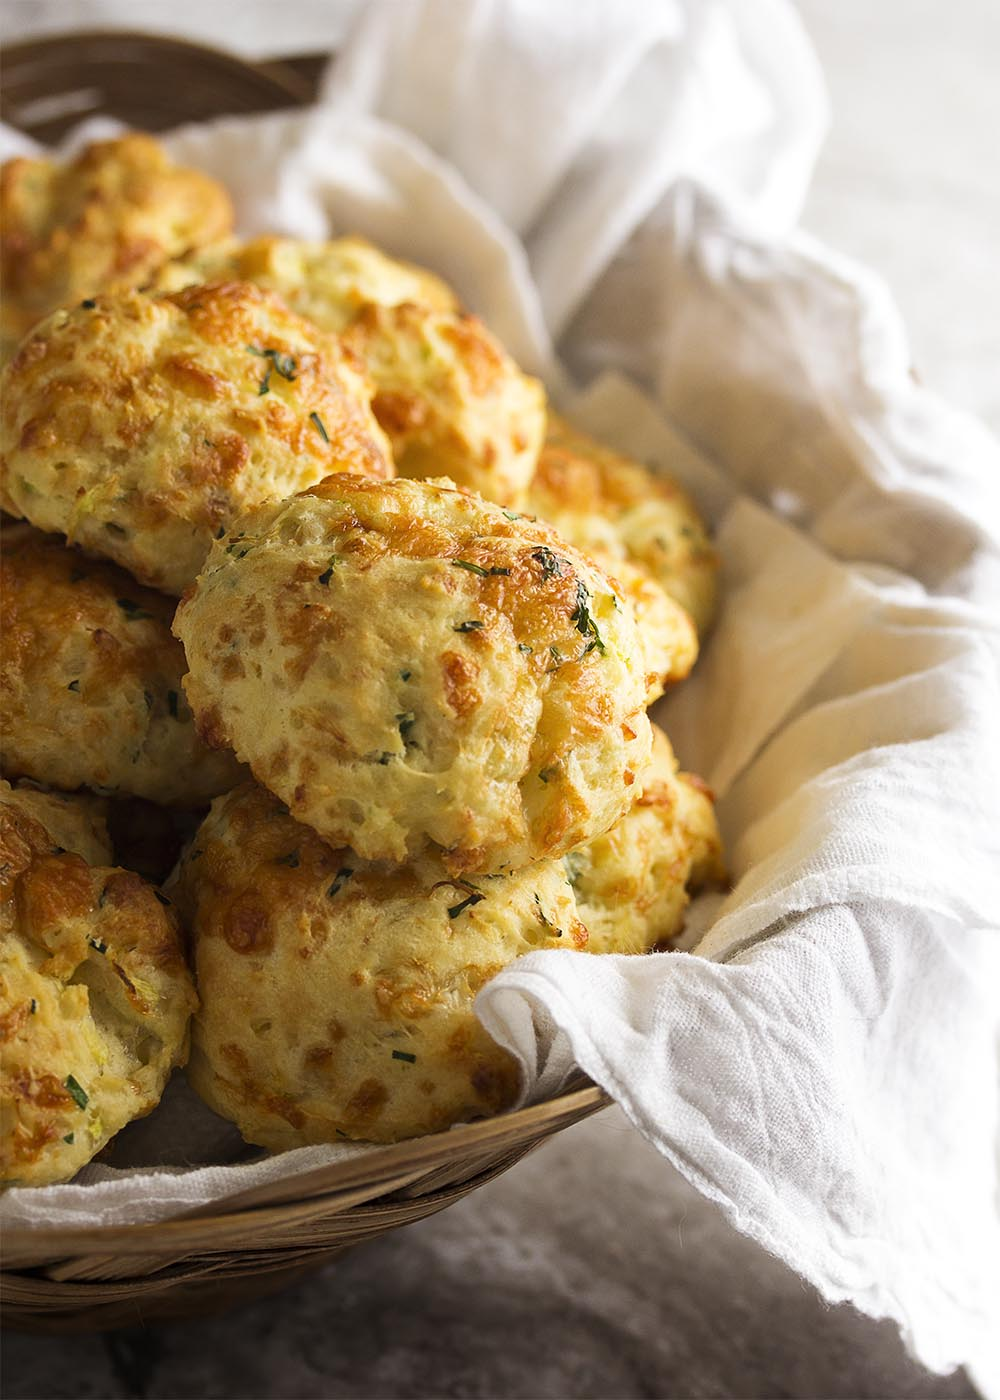 Zucchini cheddar biscuits are soft, tender and full of shredded zucchini and sharp cheddar. Just drop them onto the baking tray and go. | justalittlebitofbacon.com